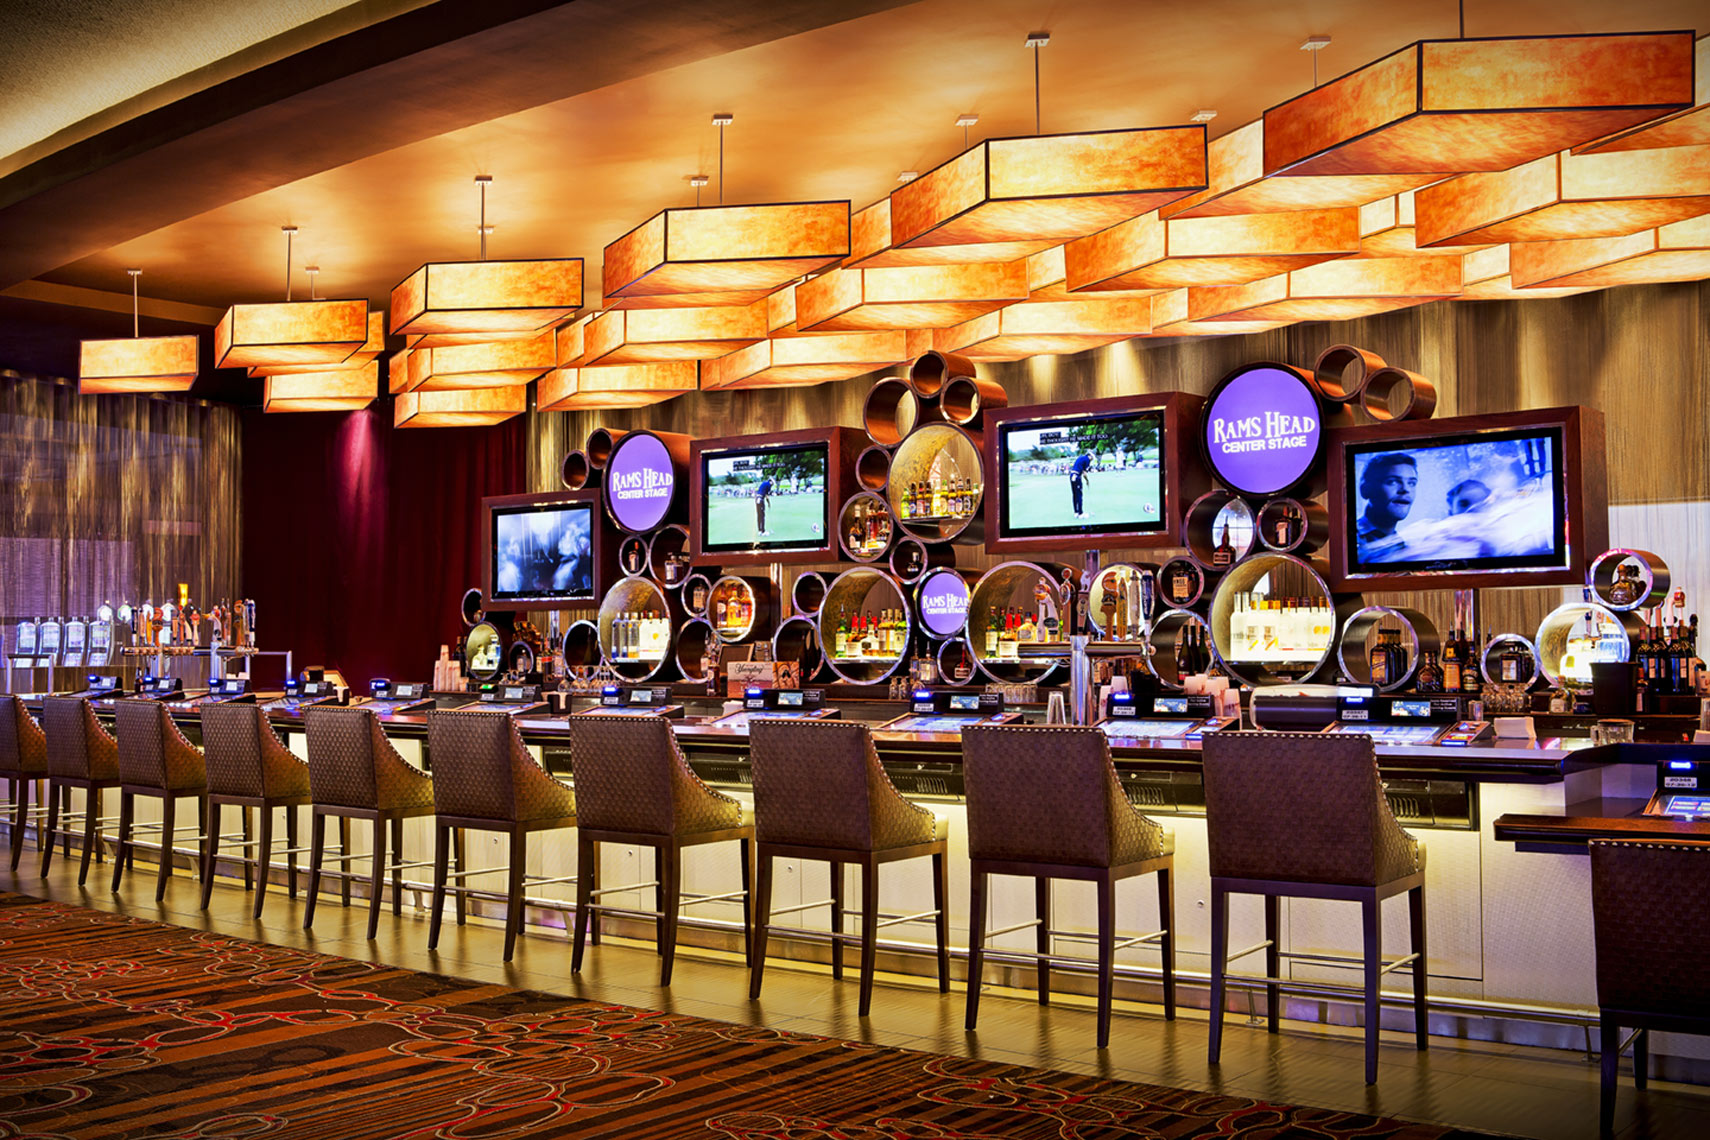 architectural photograph of a casino interior by Dan Poyourow